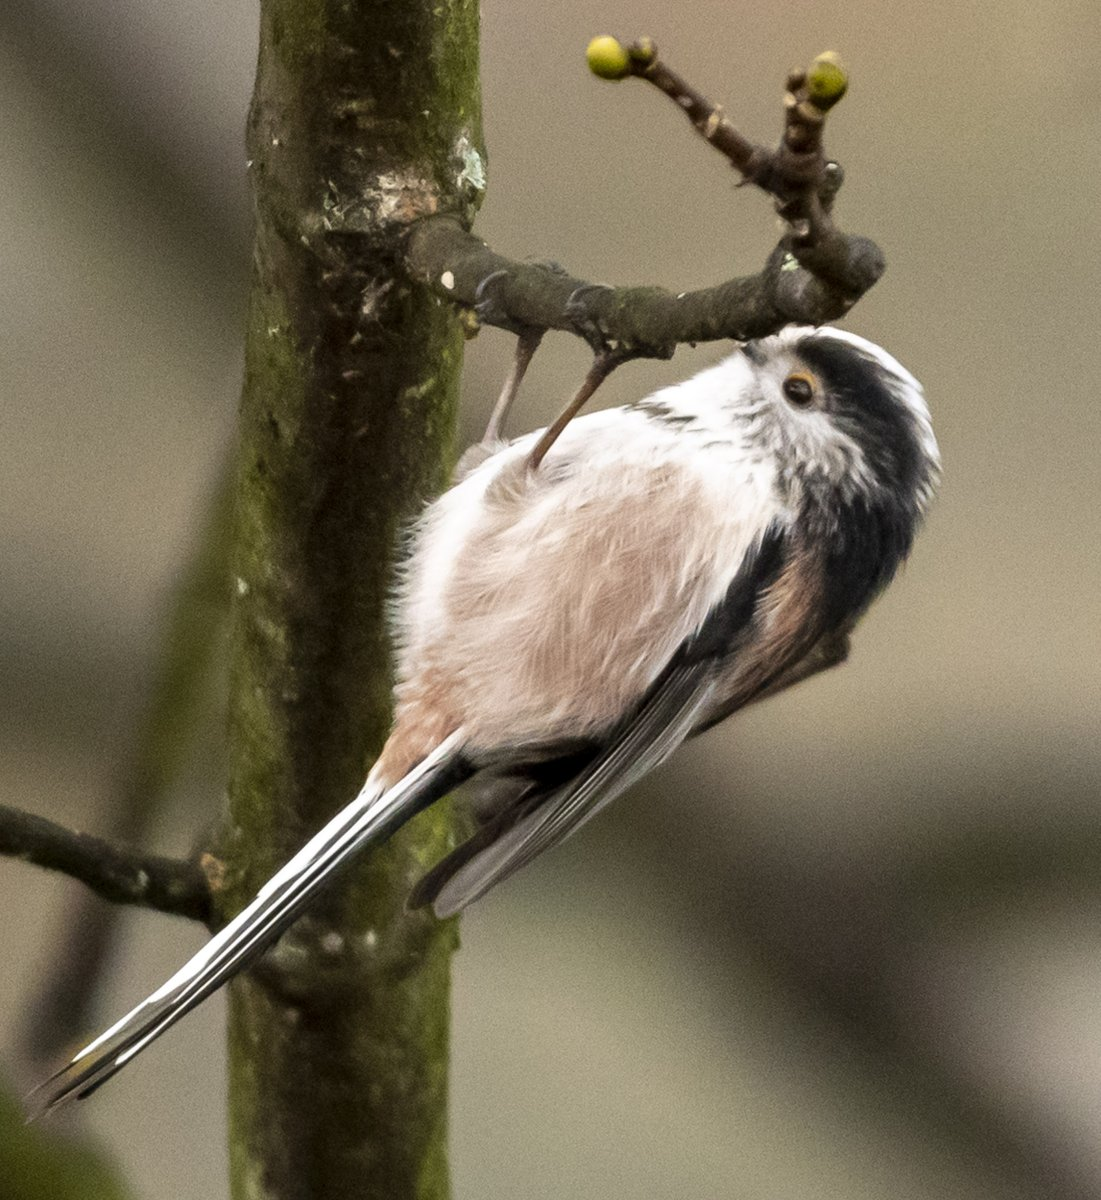 Now would be a good time to clean out any bird feeders and nest boxes. If you haven't got one and are thinking about getting one, the BTO have some great advice on nest boxes.  #wildlife  #nature #rspb #bto #birds #naturelovers #outdoors #nature #bootroutes